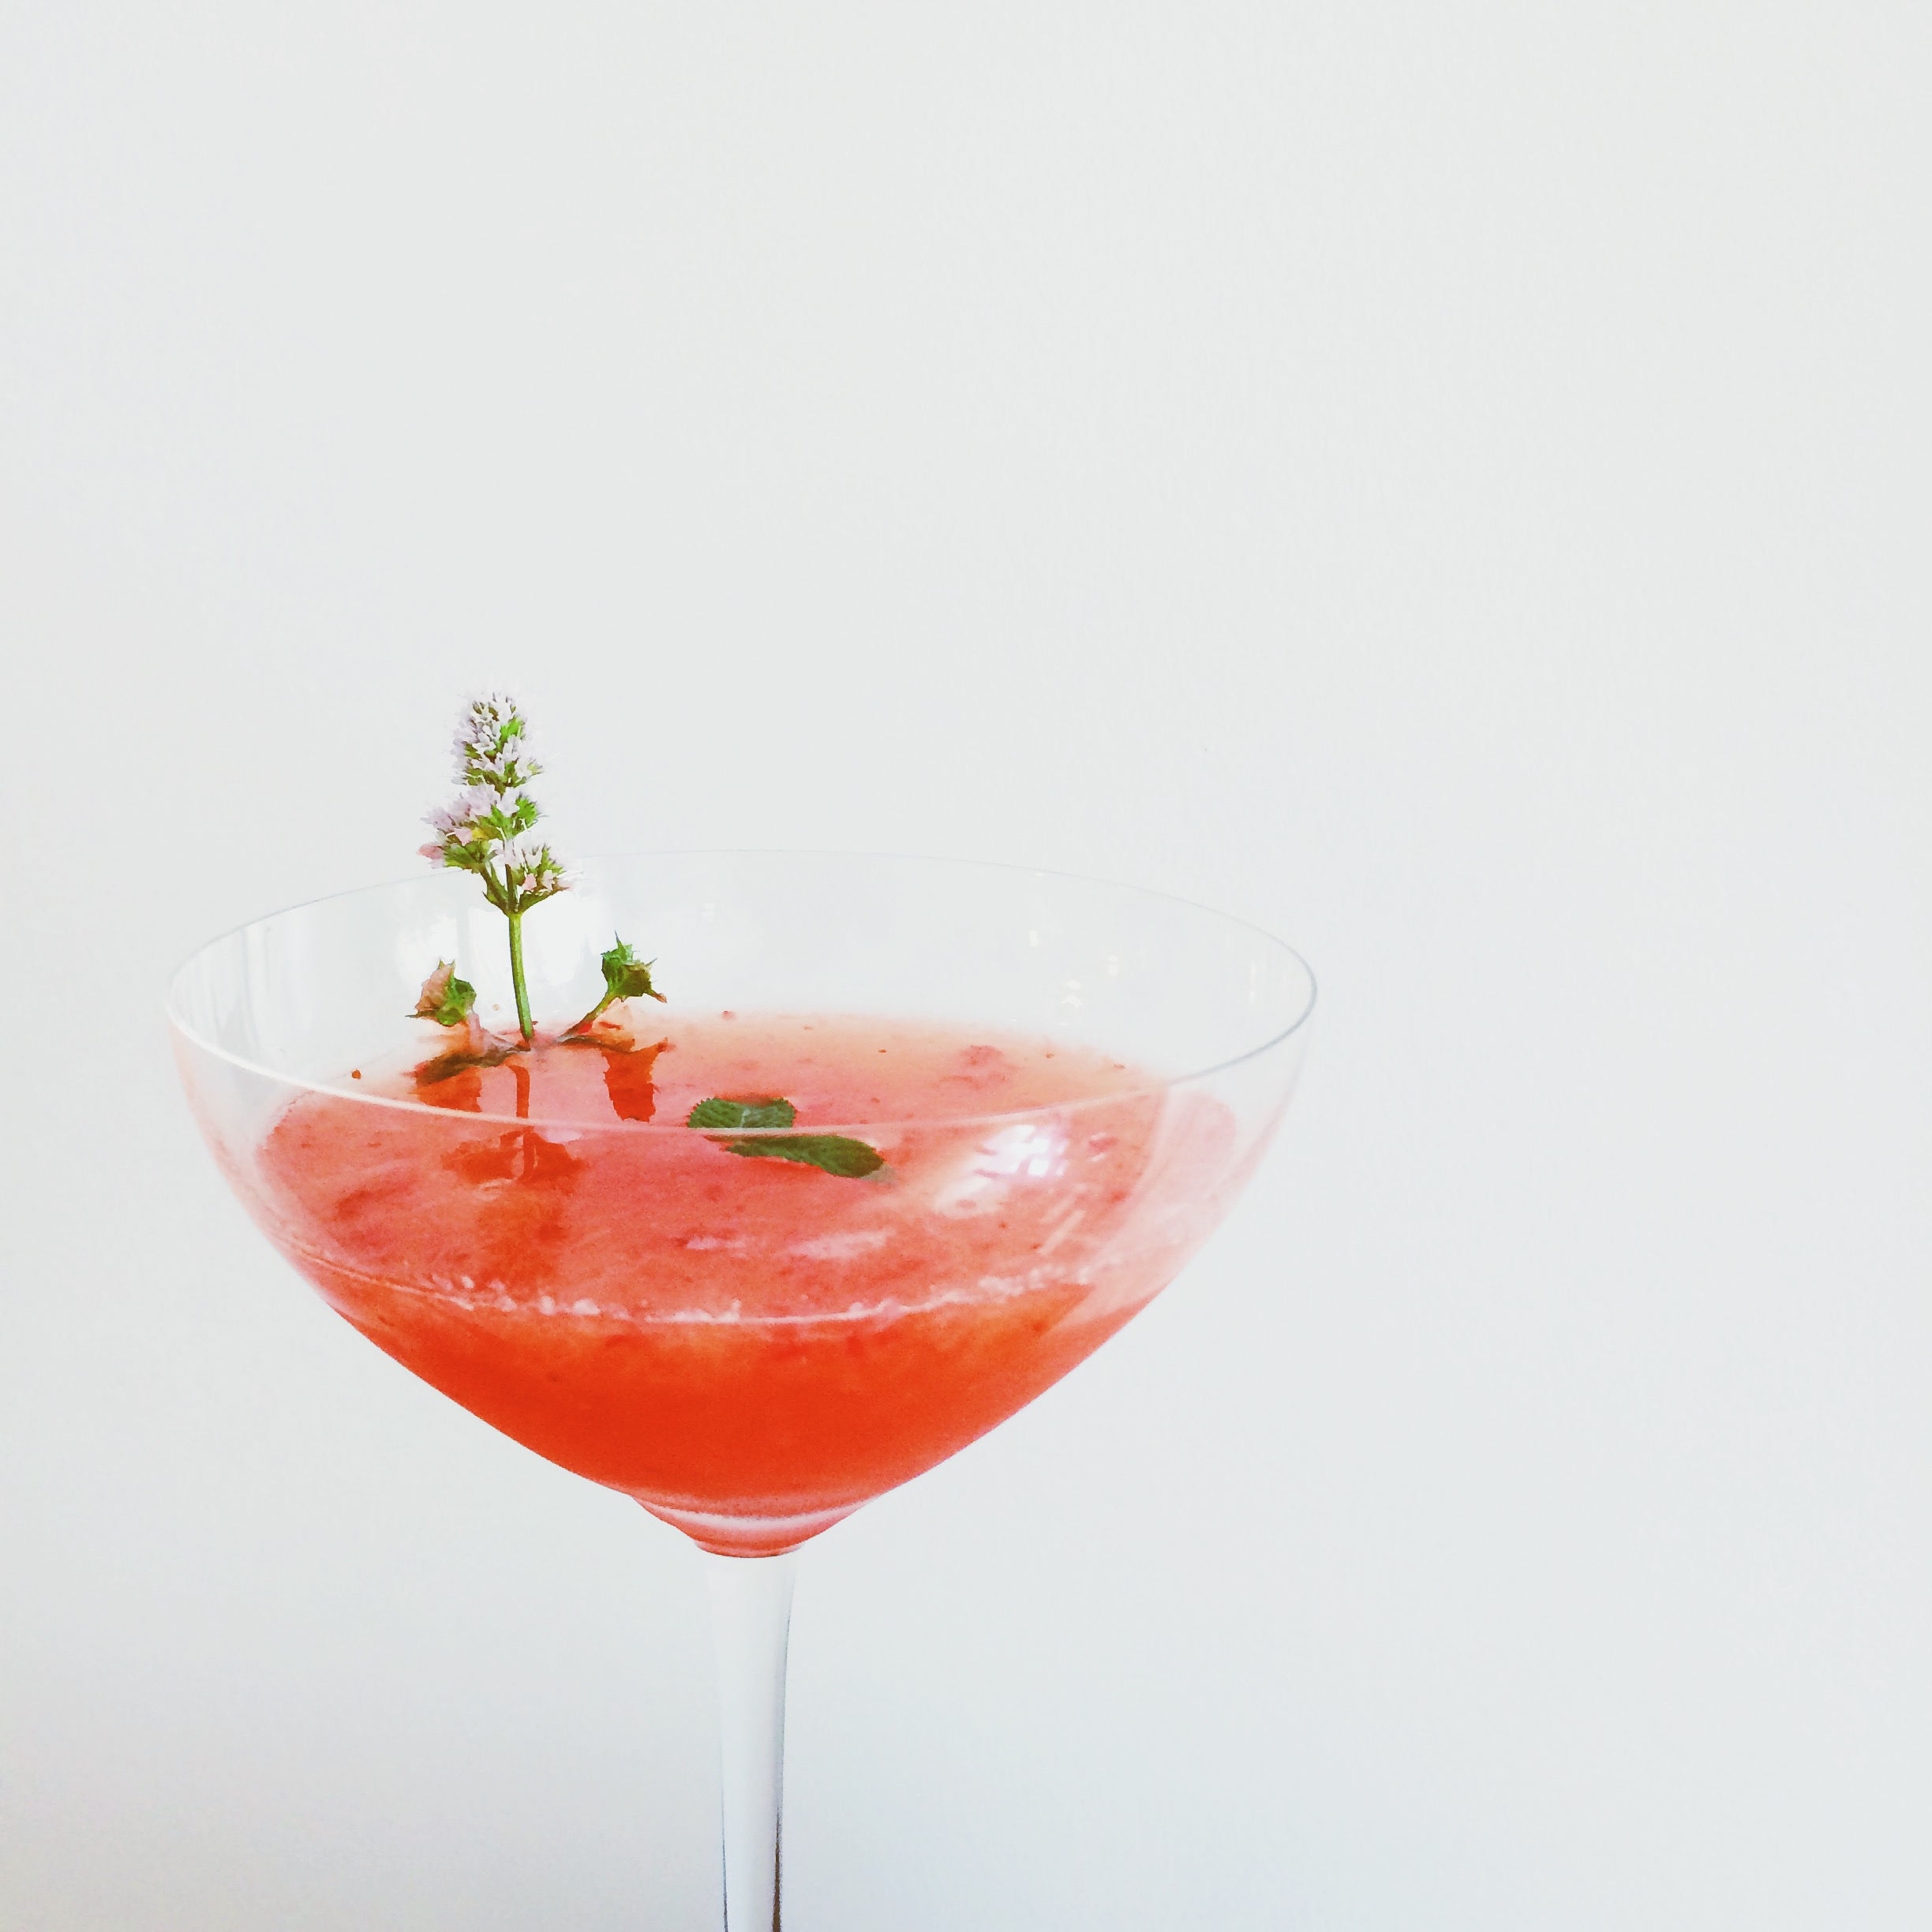 StrawberryDaiquiri.jpg